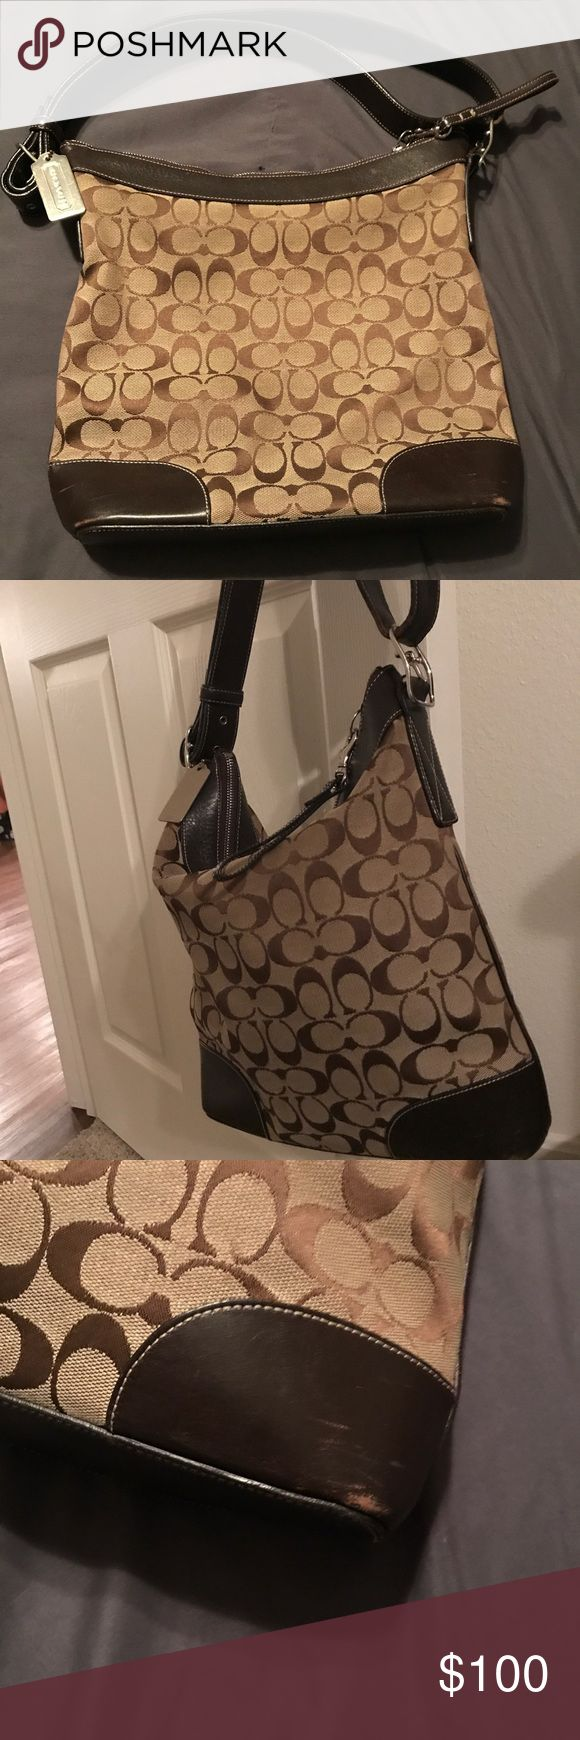 Vintage Coach Hobo Bag Authentic Vintage Coach large bag. The only wear is pictured. Very gently used. Includes Dustbag Coach Bags Shoulder Bags